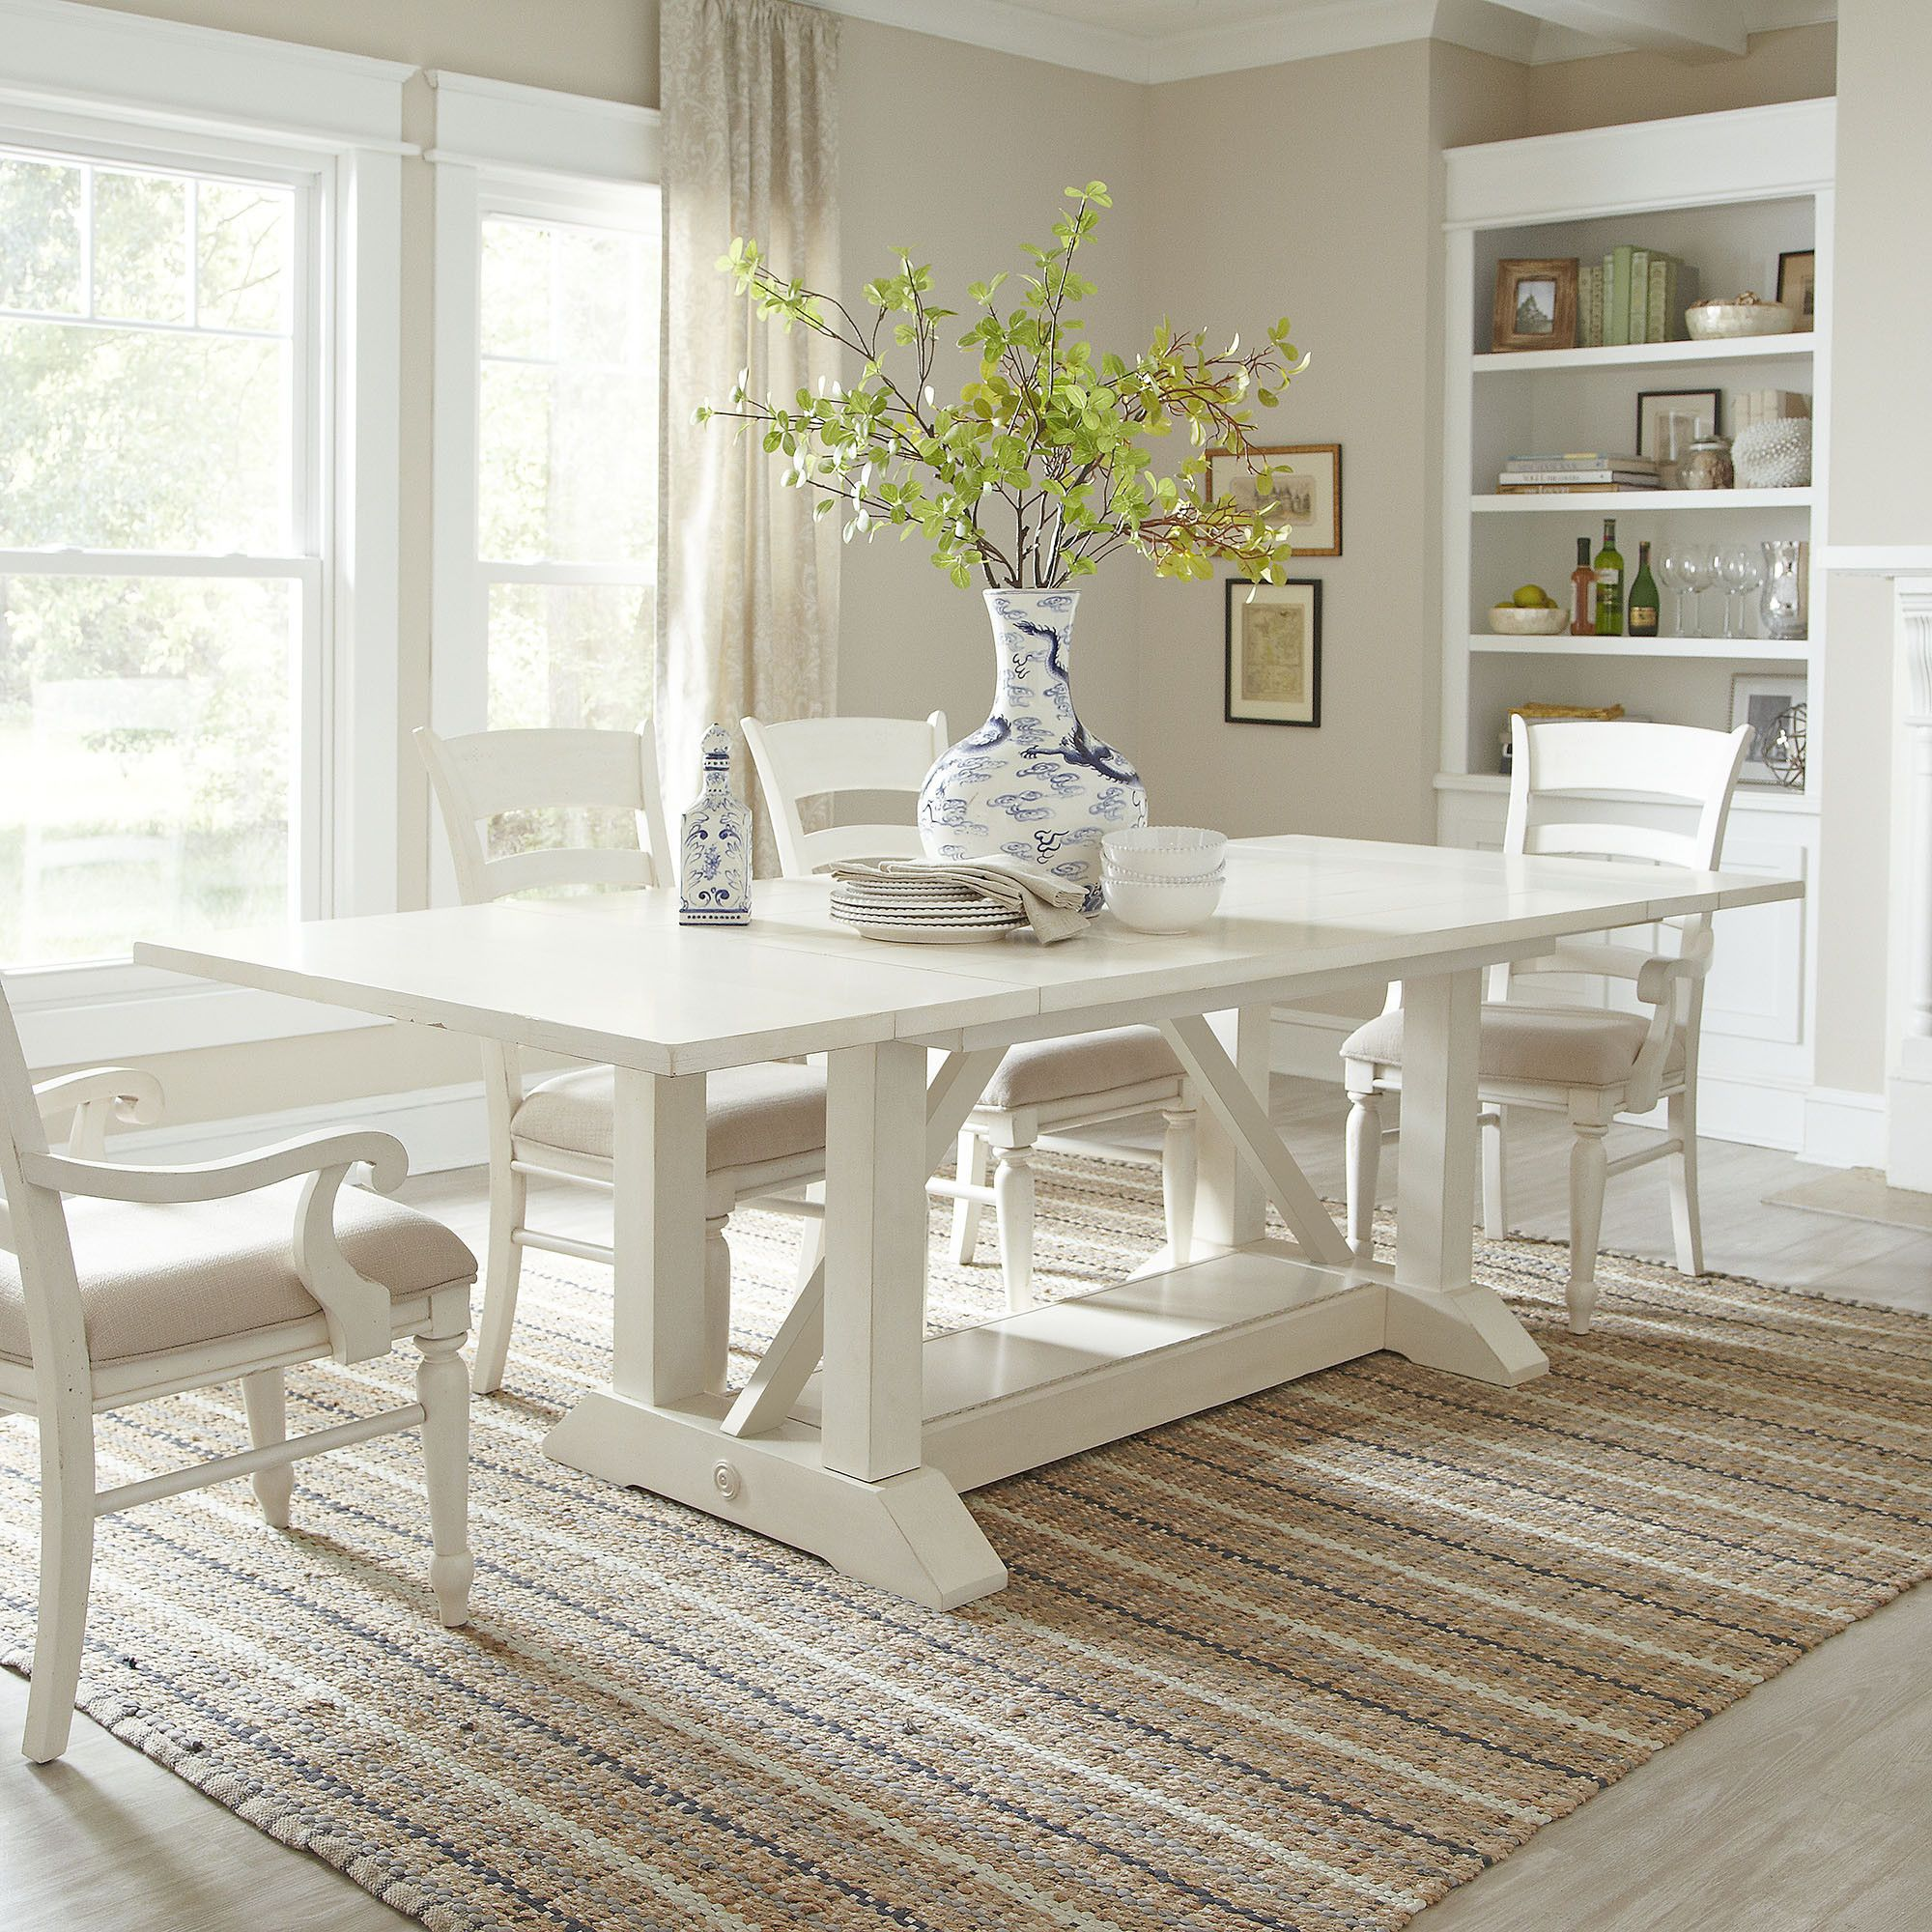 Lisbon Extendable Dining Table Extendable Dining Table Dining